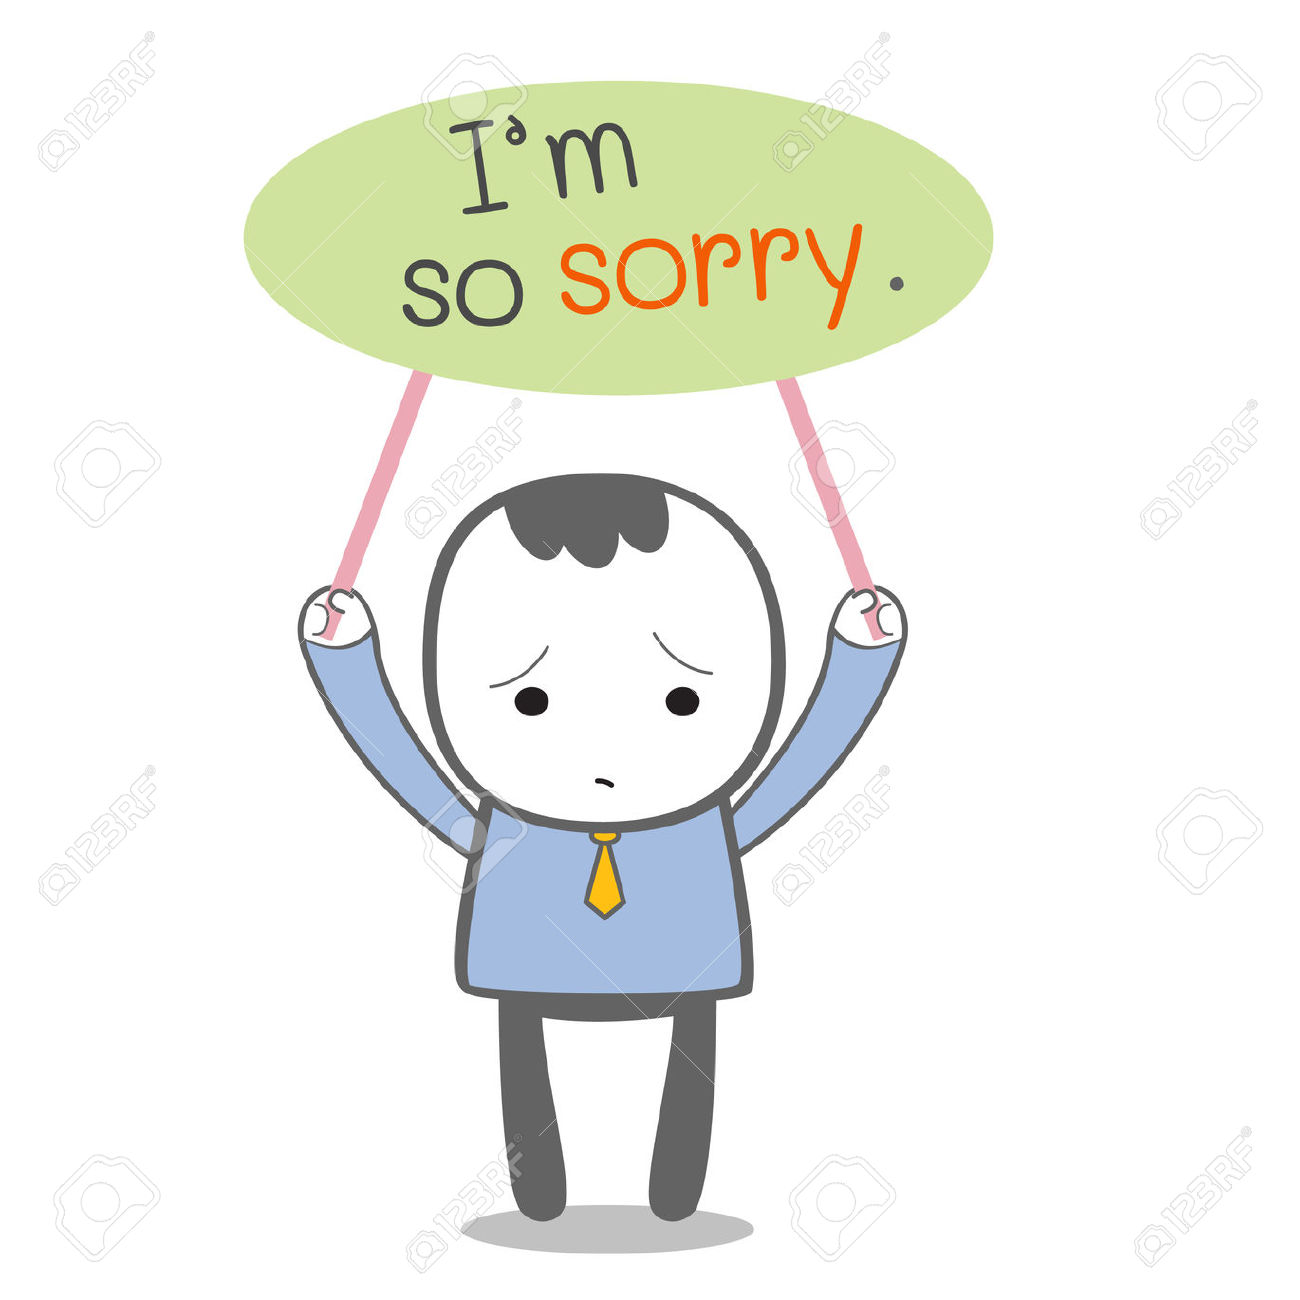 Clipart message boy svg black and white library A boy saying sorry clipart - ClipartFest svg black and white library